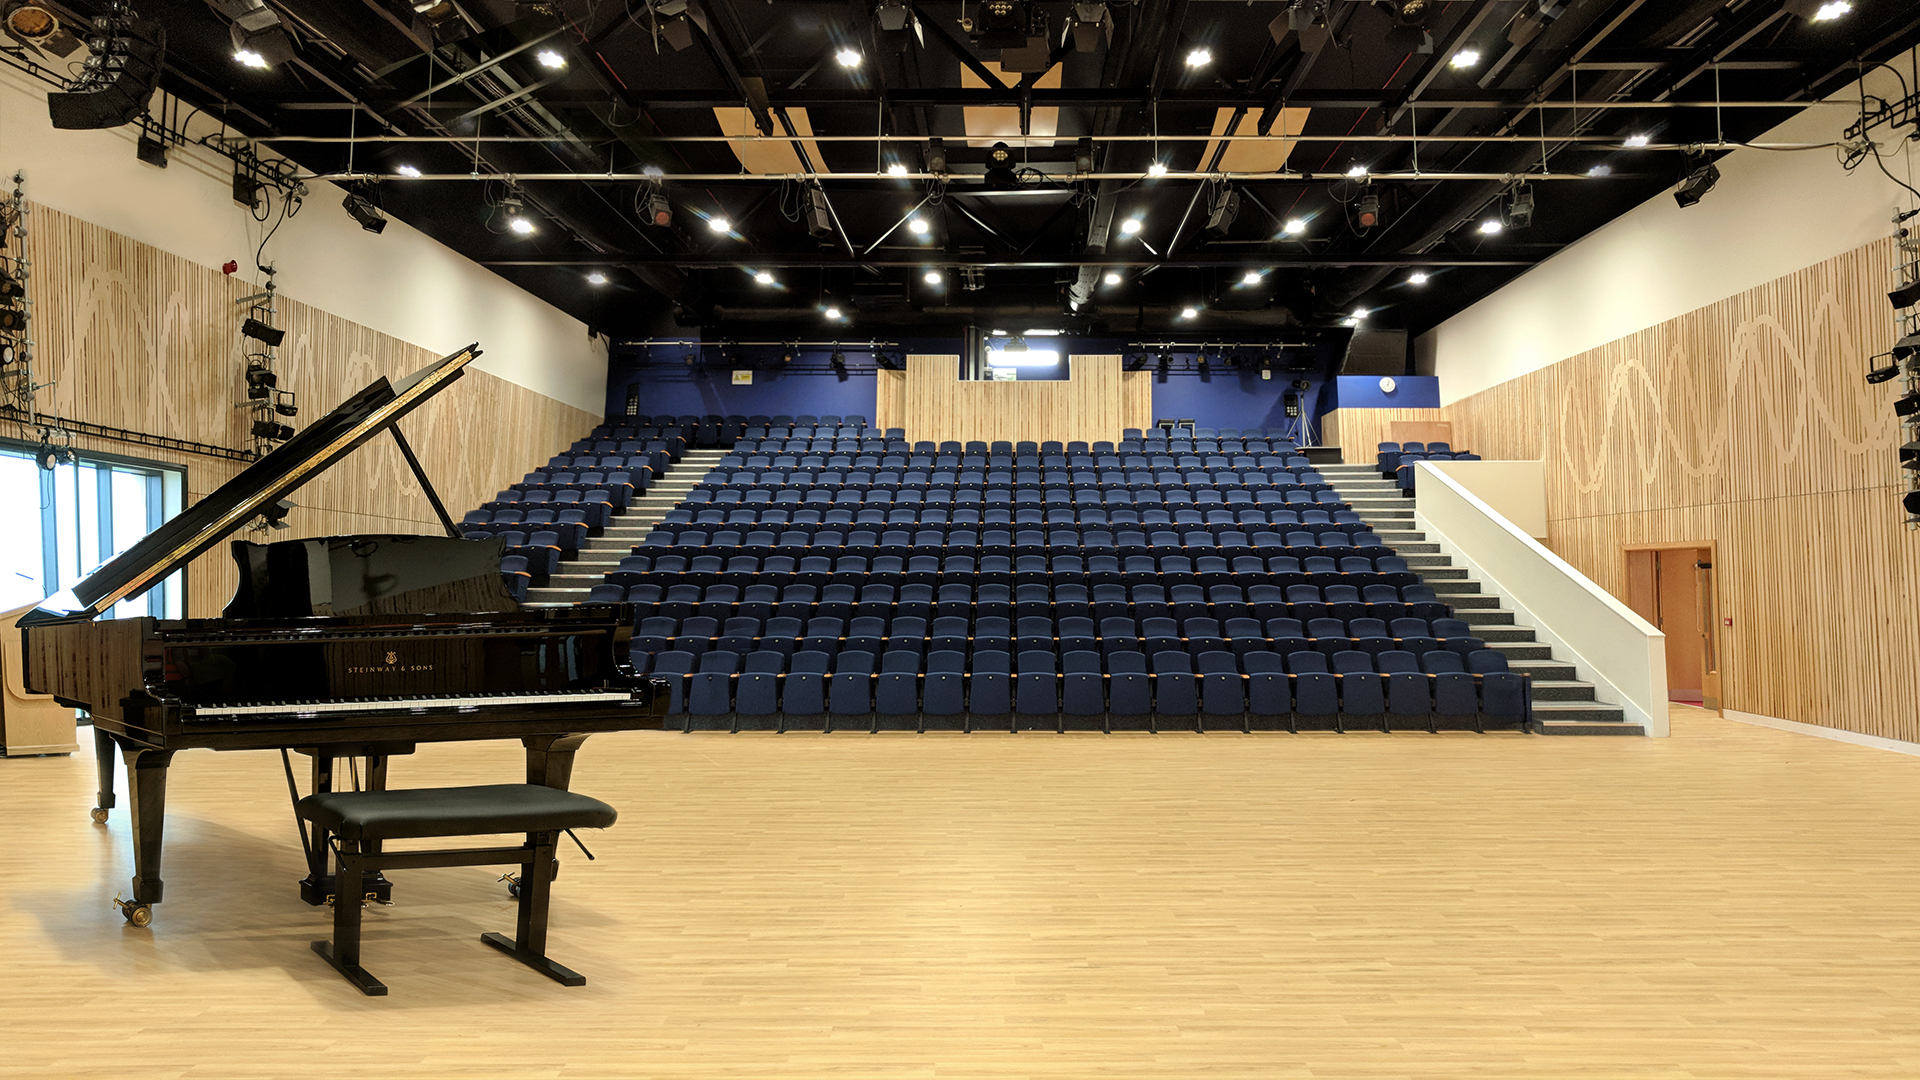 Auditorium architecture for King Edward's school